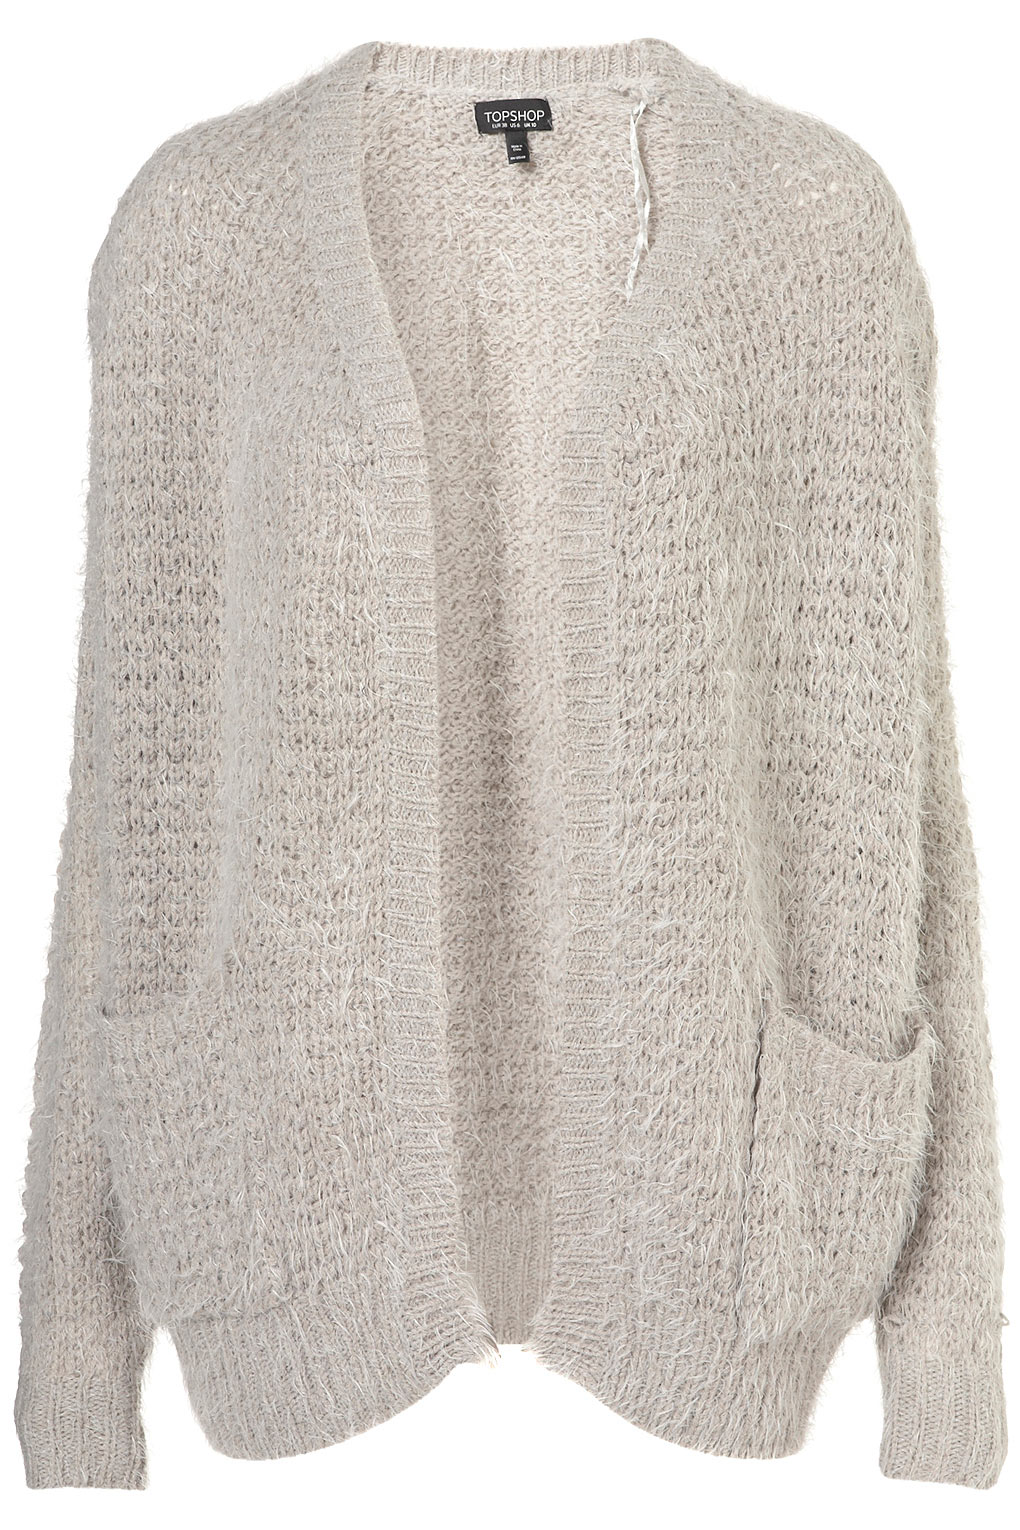 Topshop Knitted Fluffy Stitch Cardigan in Gray | Lyst